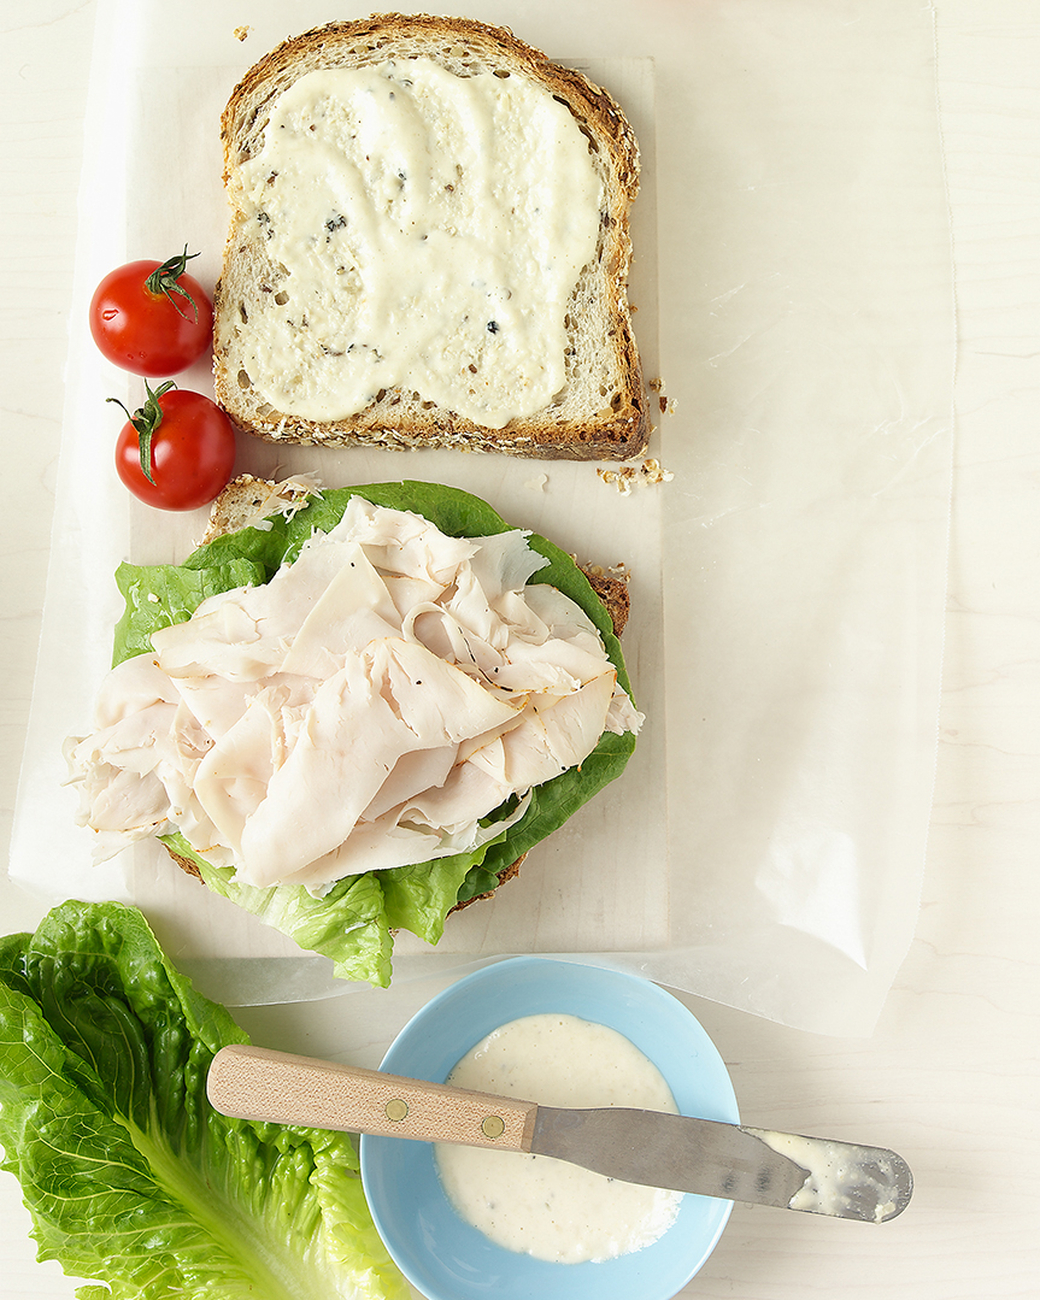 What To Do With The Leftovers Turkey Sandwich Anyone: 5 Recipe Ideas For Your Thanksgiving Leftovers